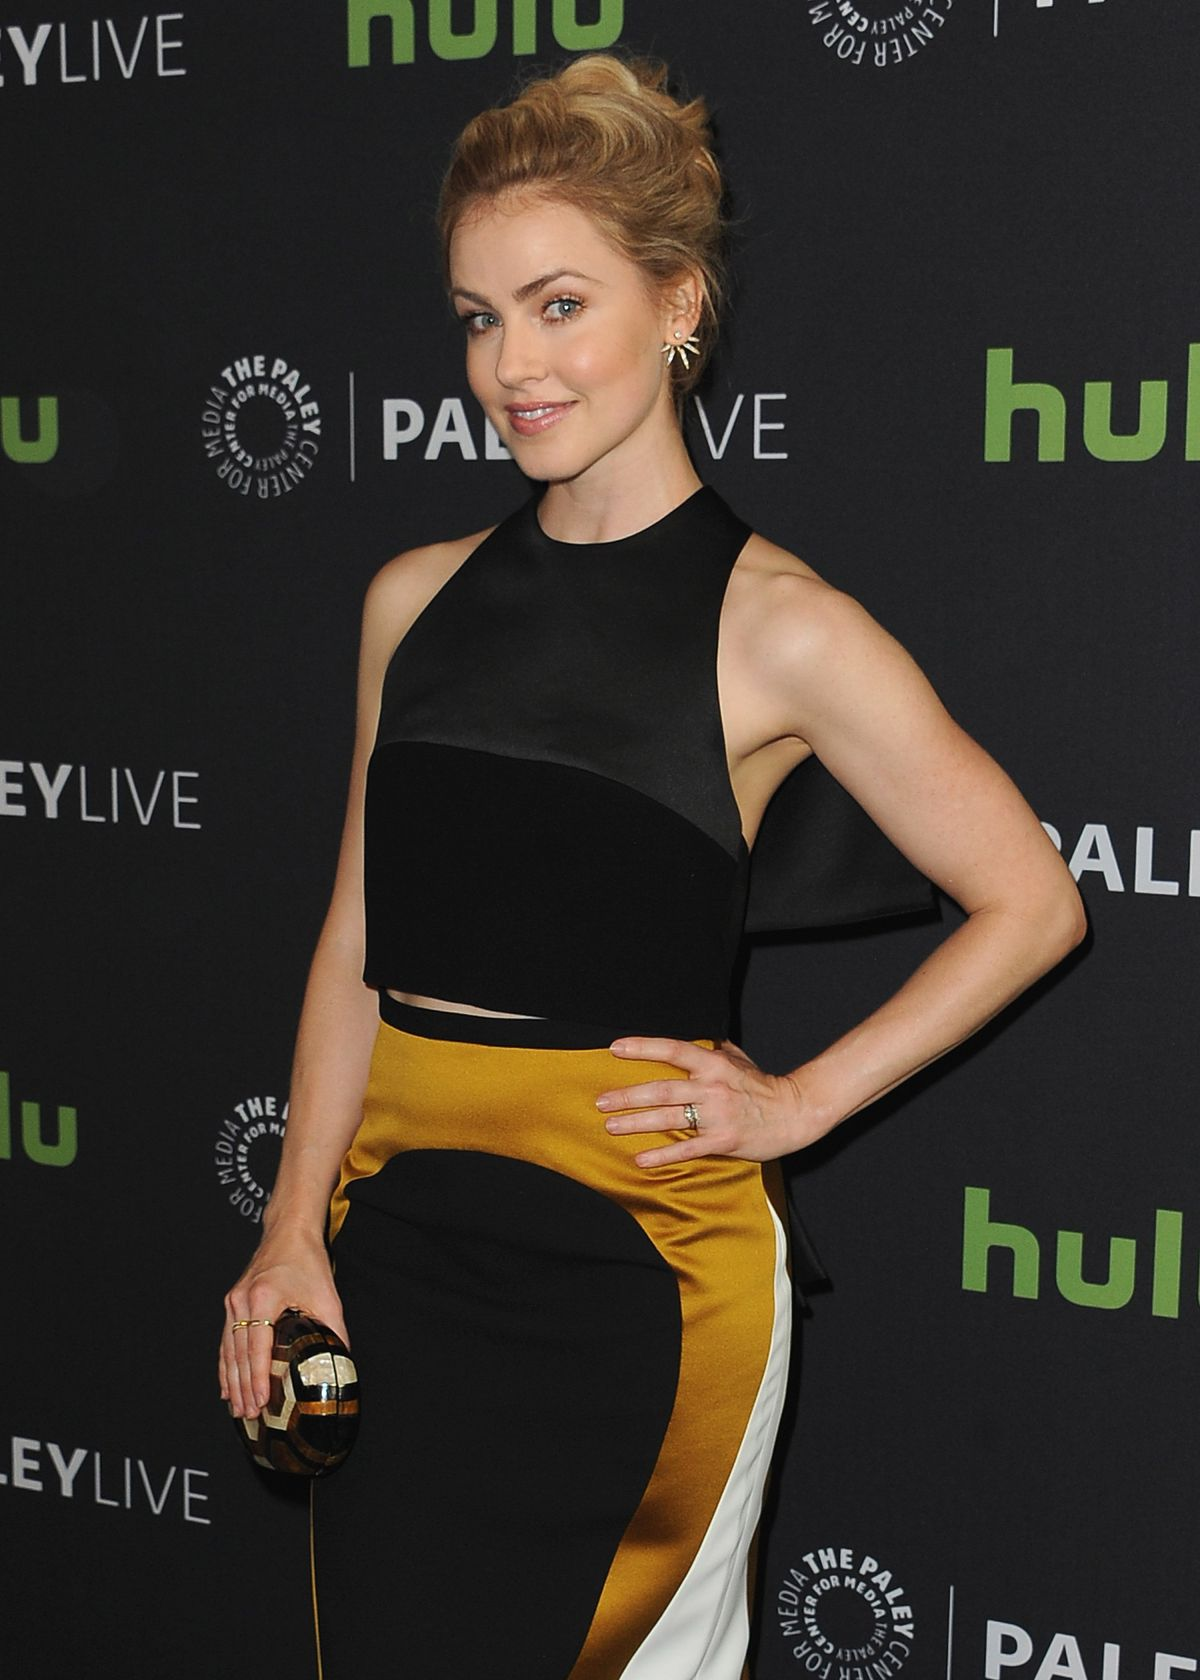 amanda schull at paleylive la an evening with 12 monkeys